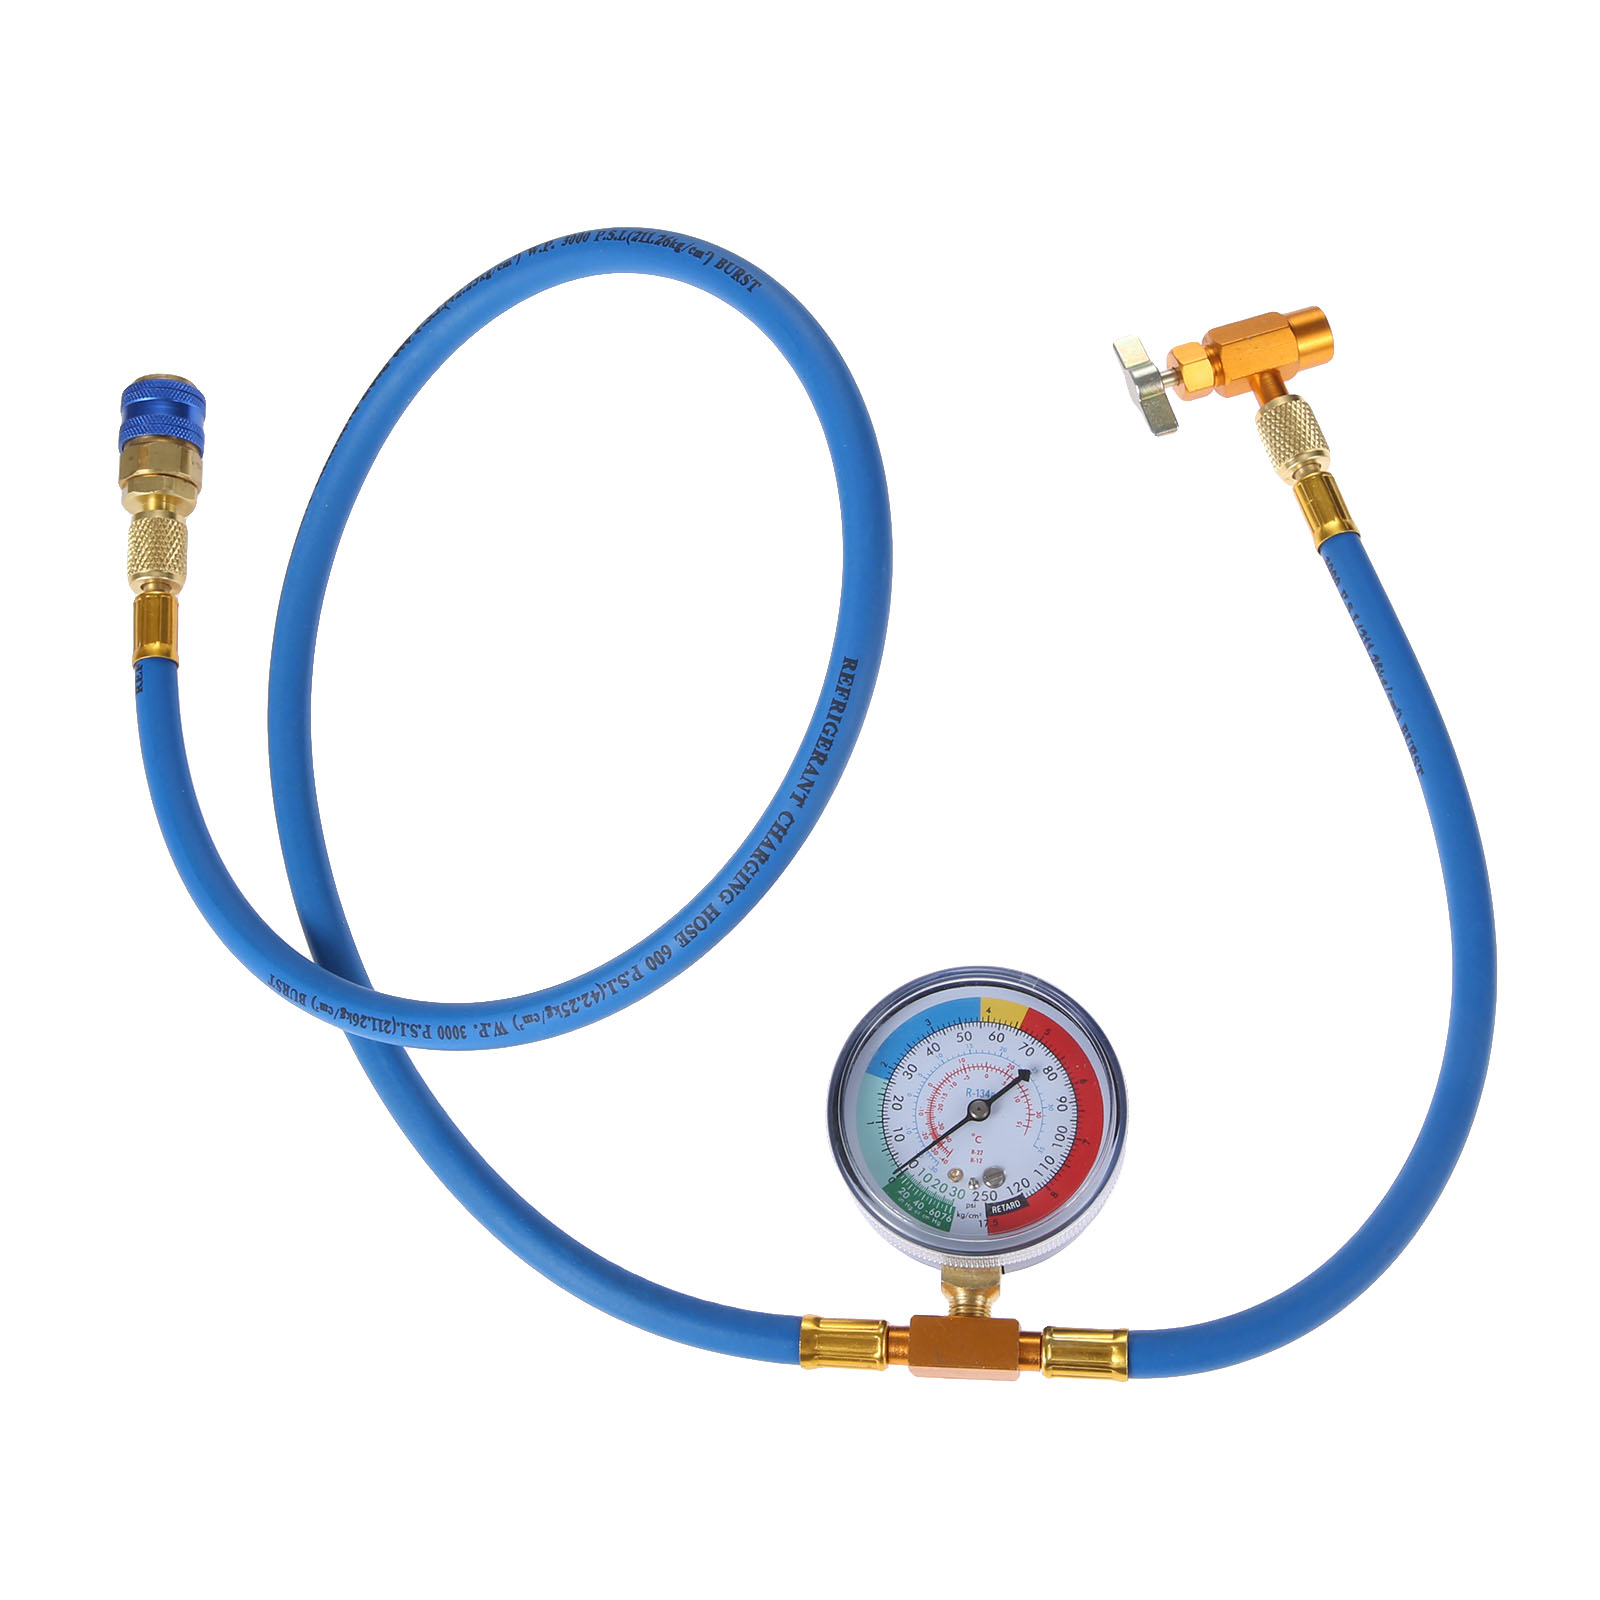 Yetaha R134A Car Air Conditioning Refrigerant Charging Hose With Gauge Can Opener Quick Coupler Auto Diagnostic Measuring Kit-in Air-conditioning Installation from Automobiles & Motorcycles